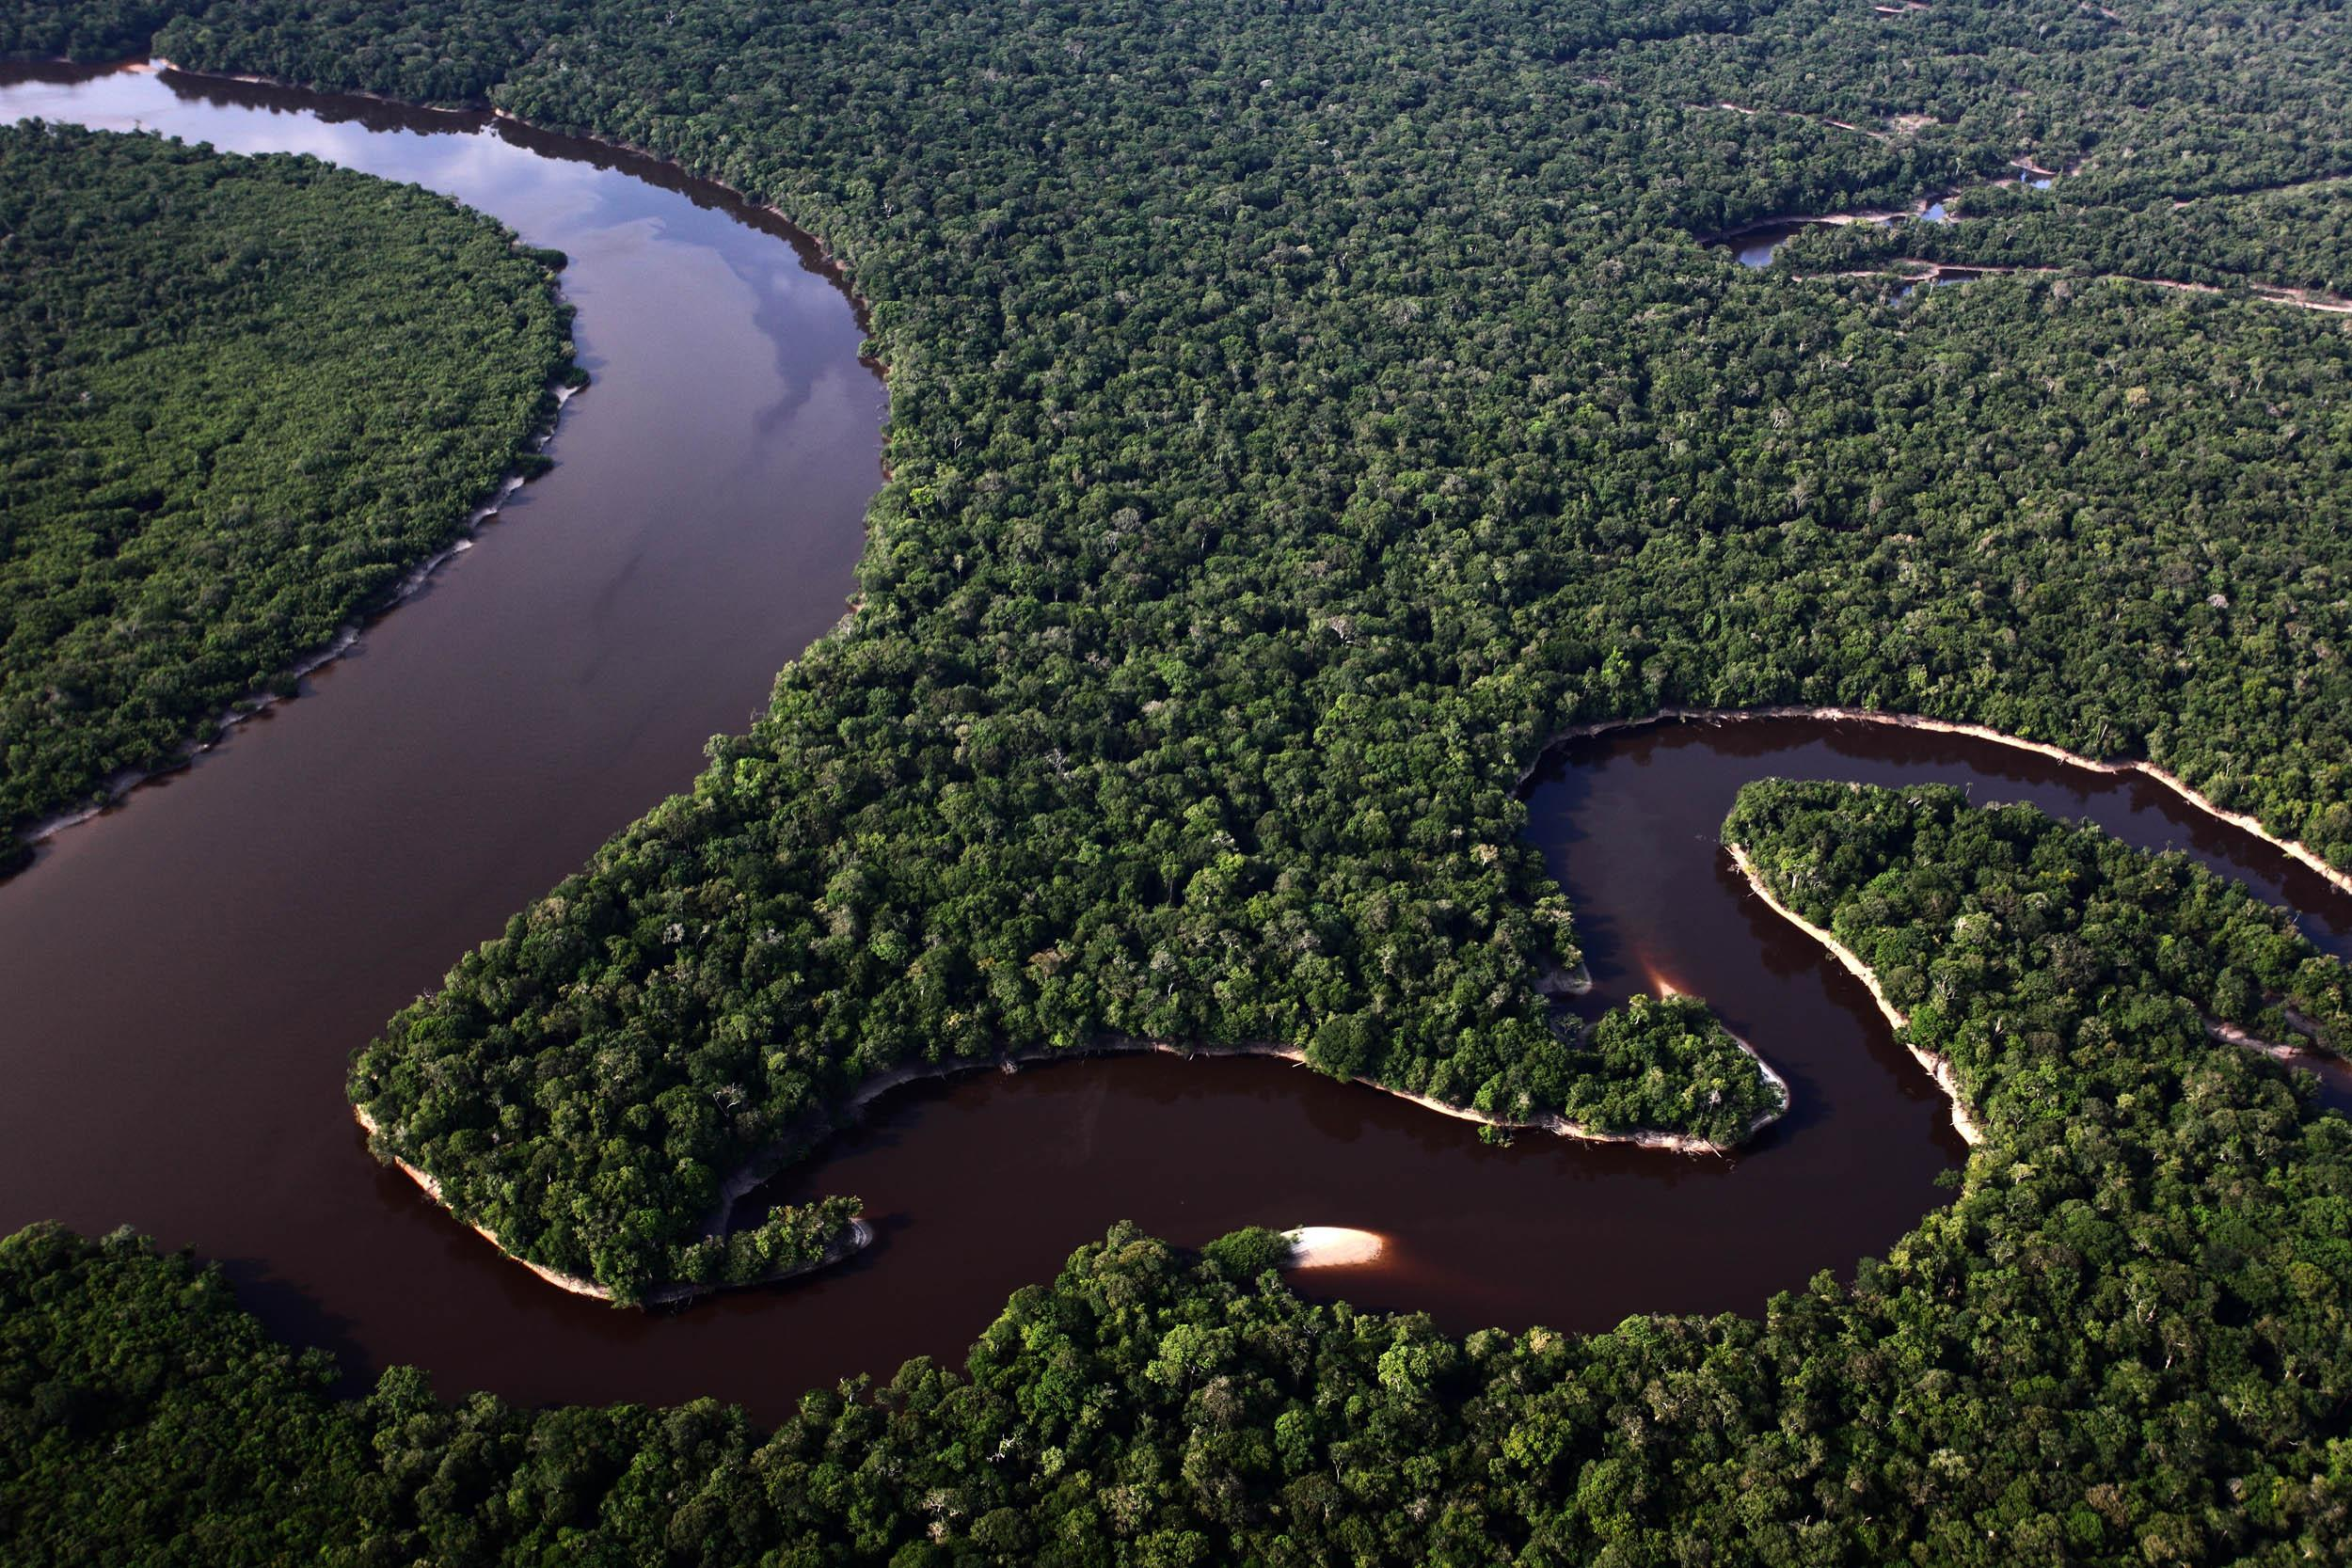 A forested landscape with a river winding through it